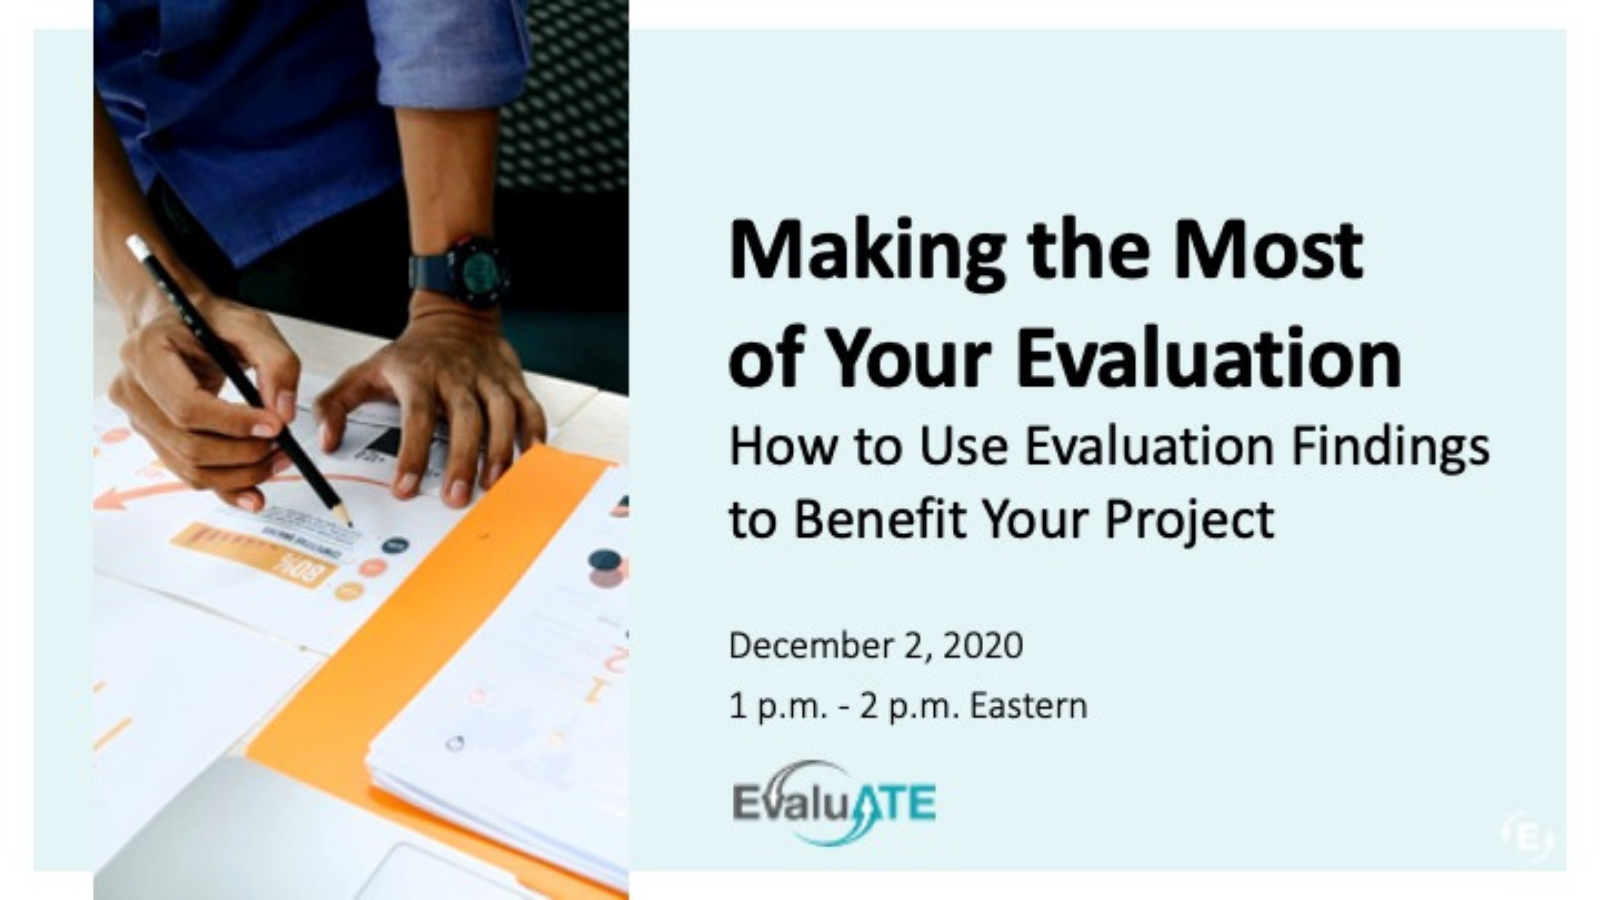 Webinar Title: Making the Most of Your Evaluation: How to Use Evaluation Findings to Benefit Your Project